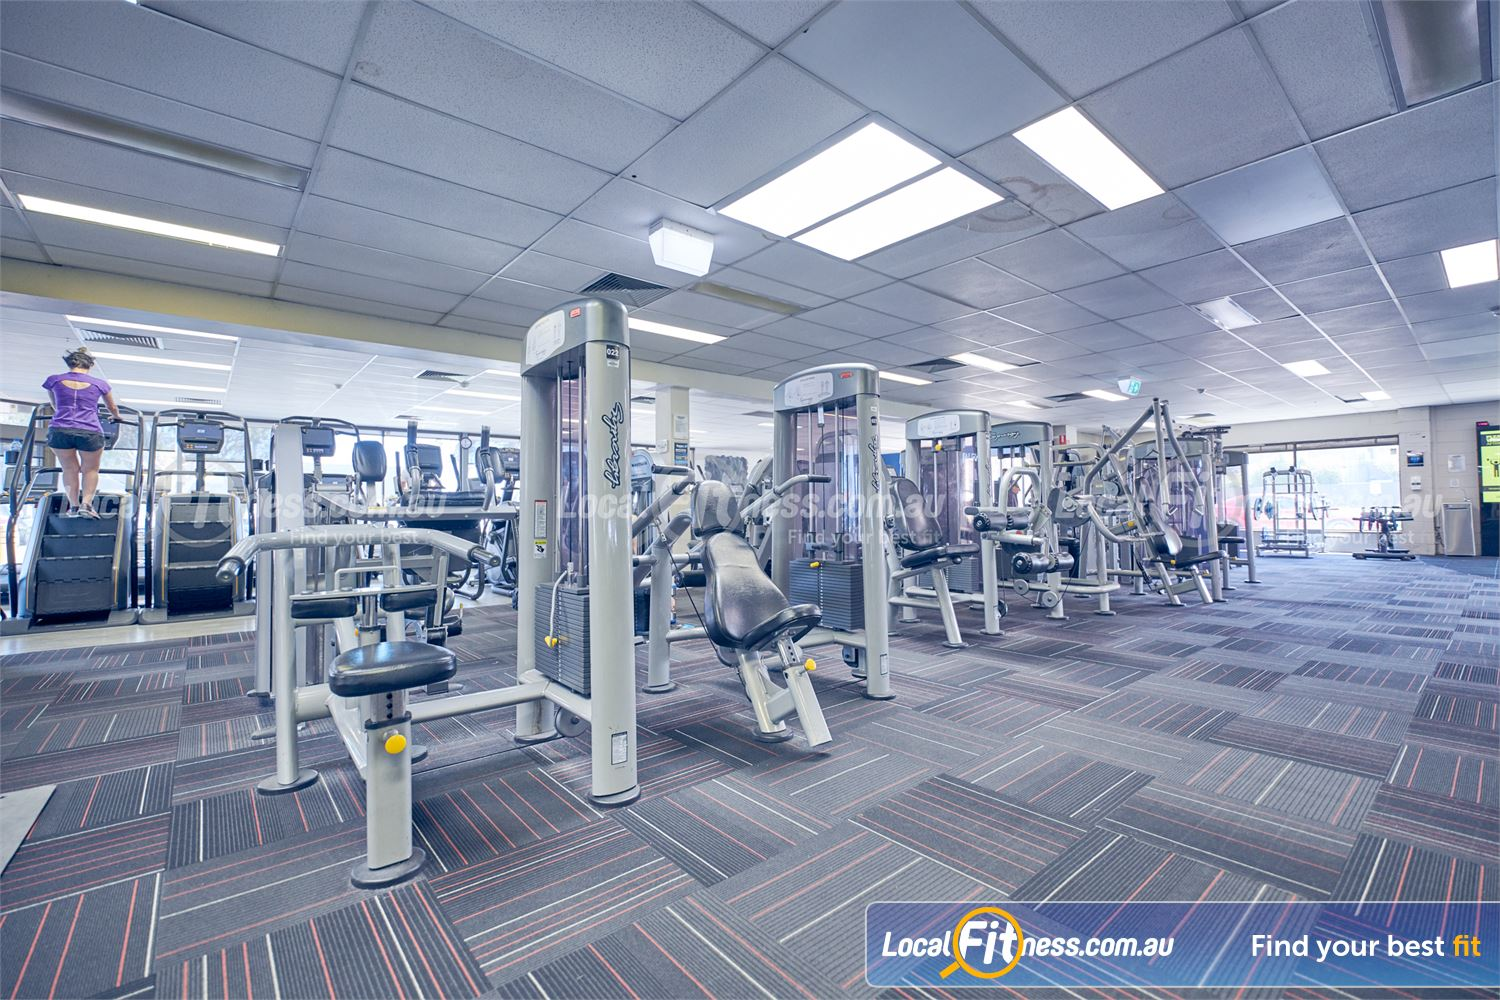 Goodlife Health Clubs Near Braeside Our 24 hour Dingley gym includes state of the art pin-loading machines.